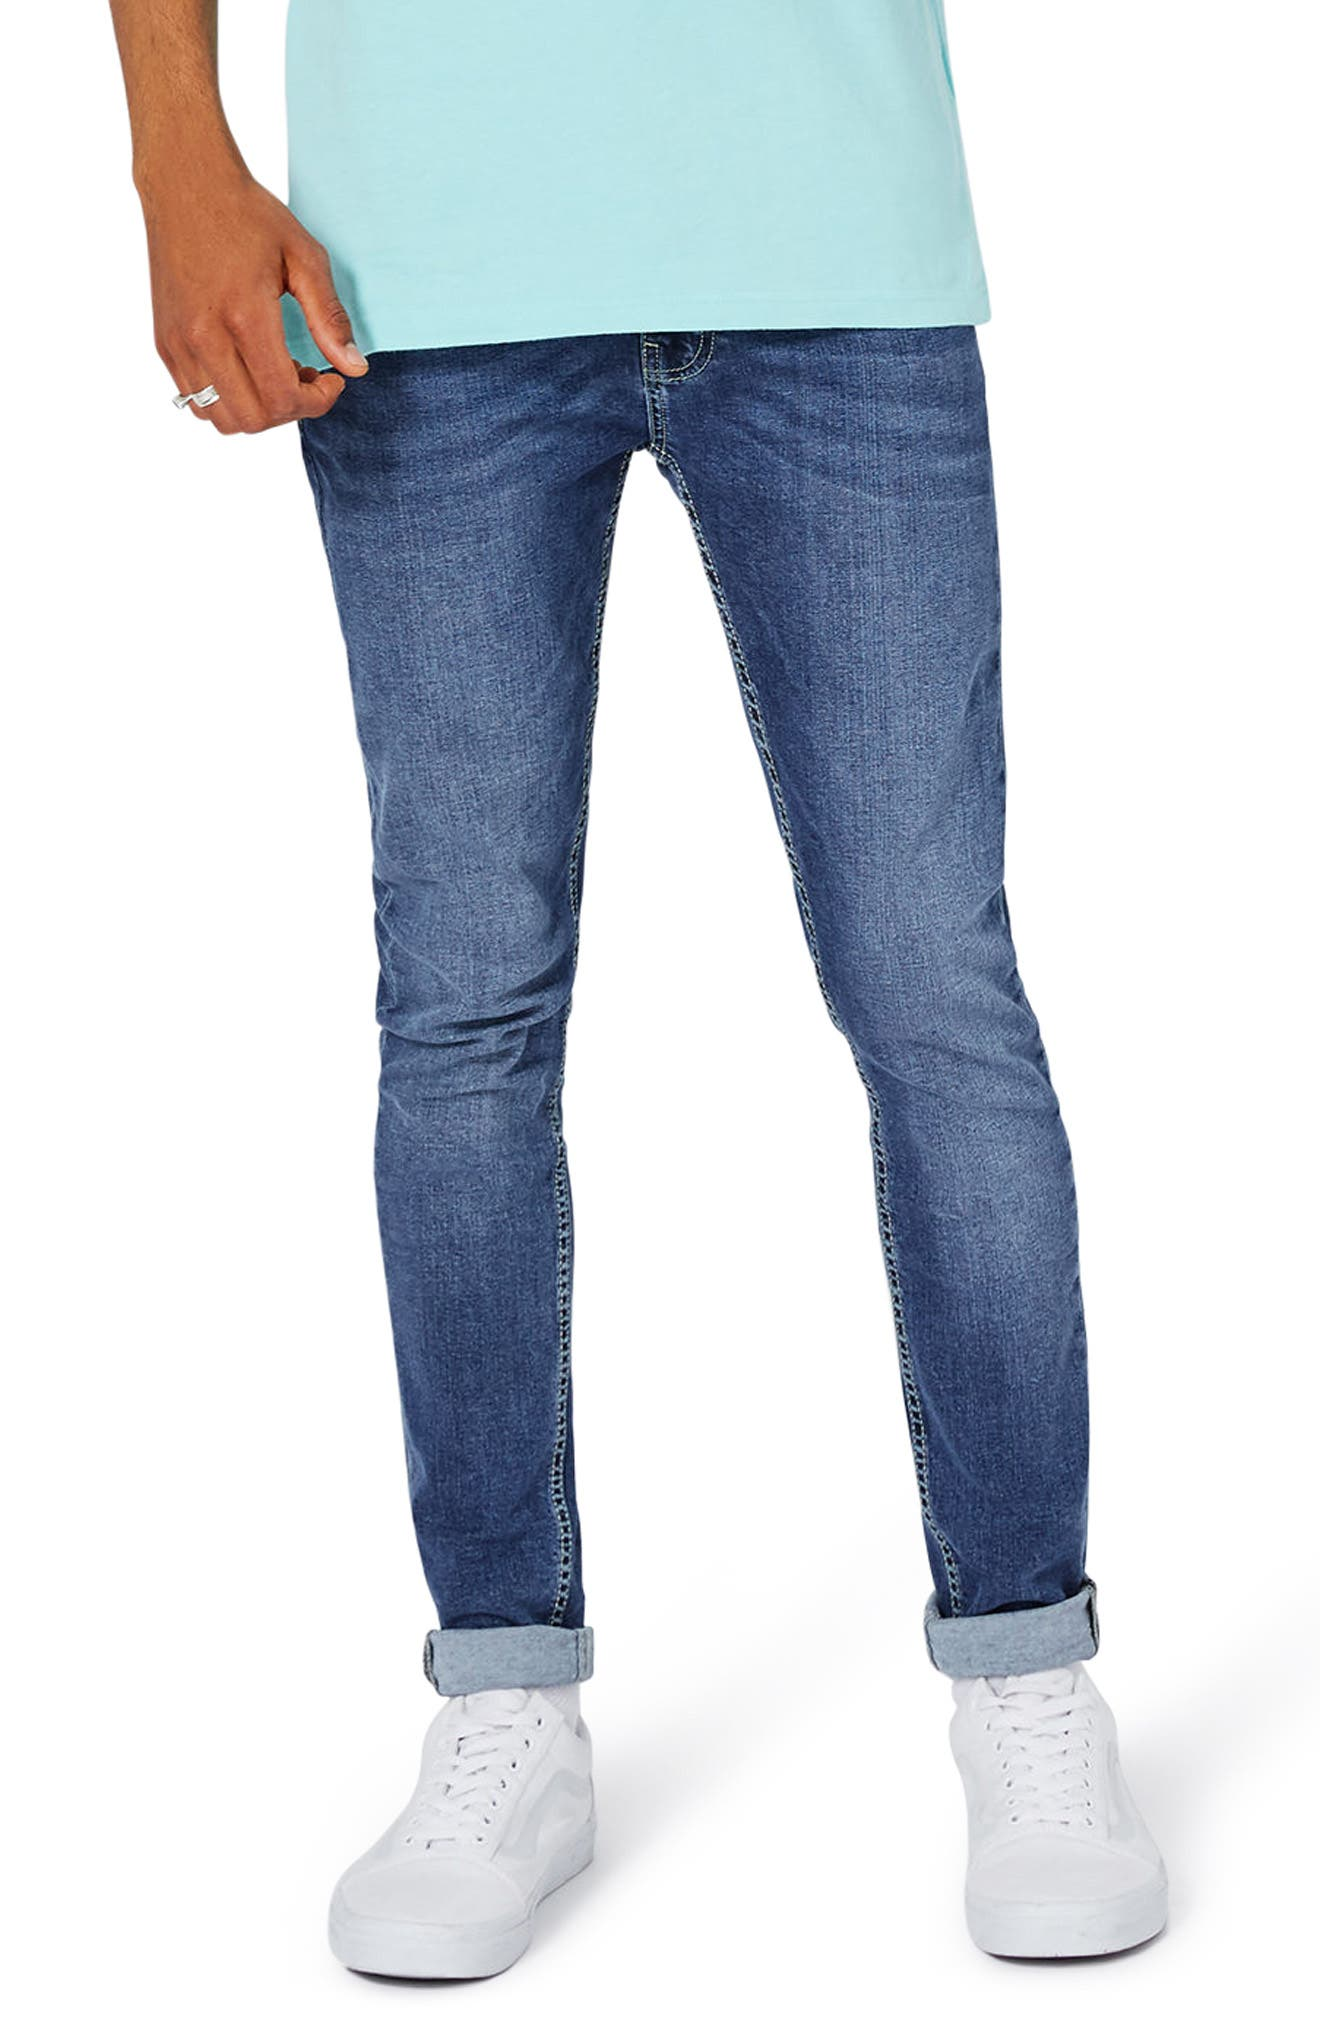 Spray-On Skinny Fit Jeans,                         Main,                         color, 400